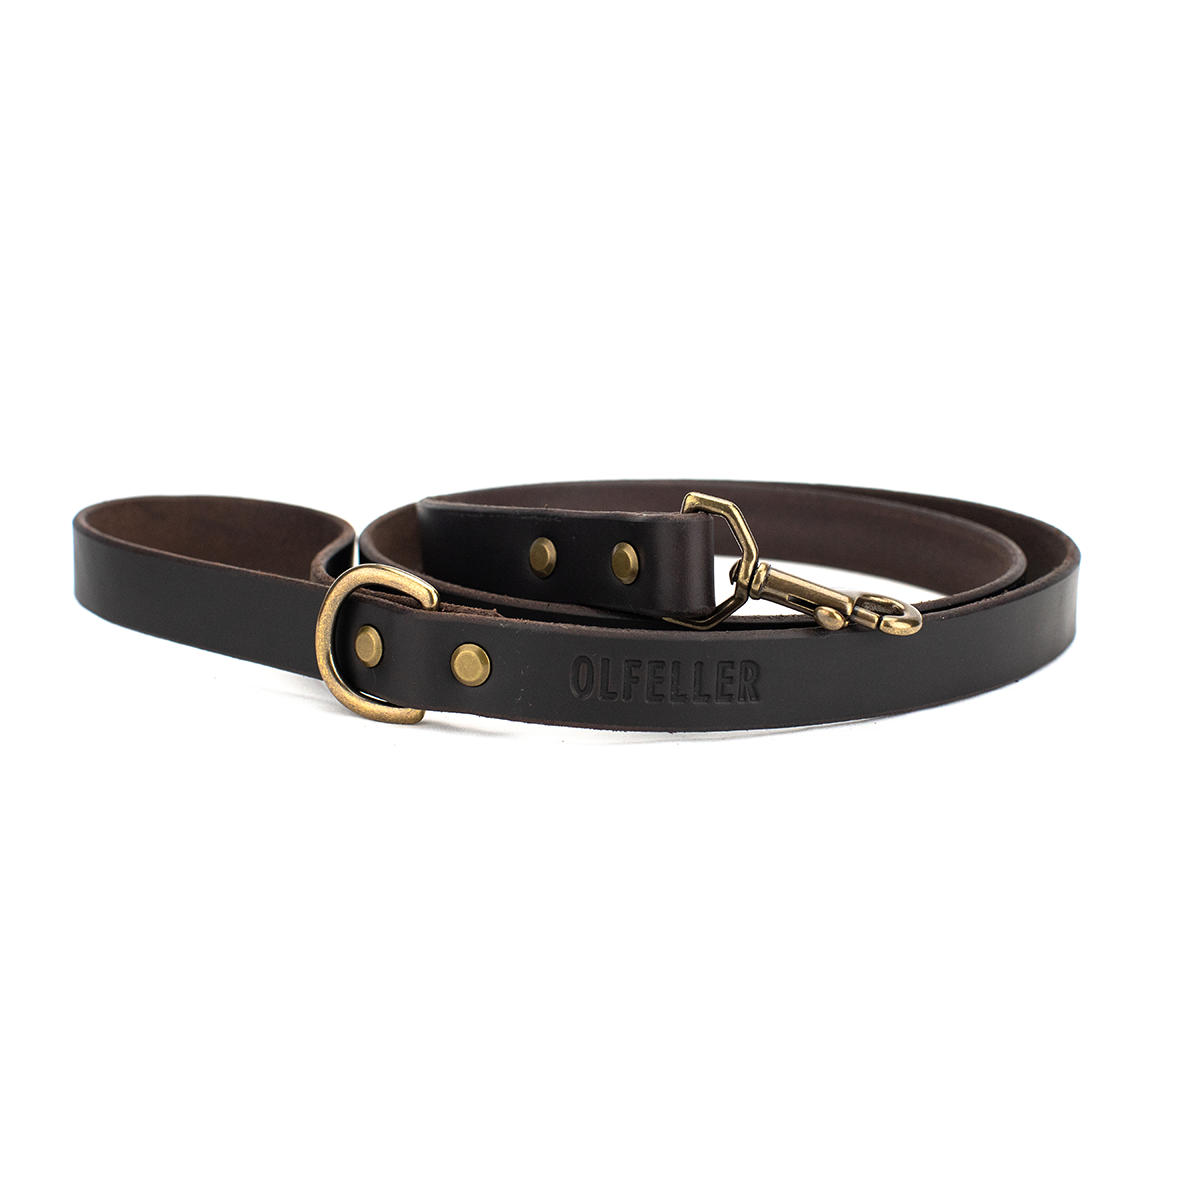 The Classic Leather Dog Leash Dark Chocolate